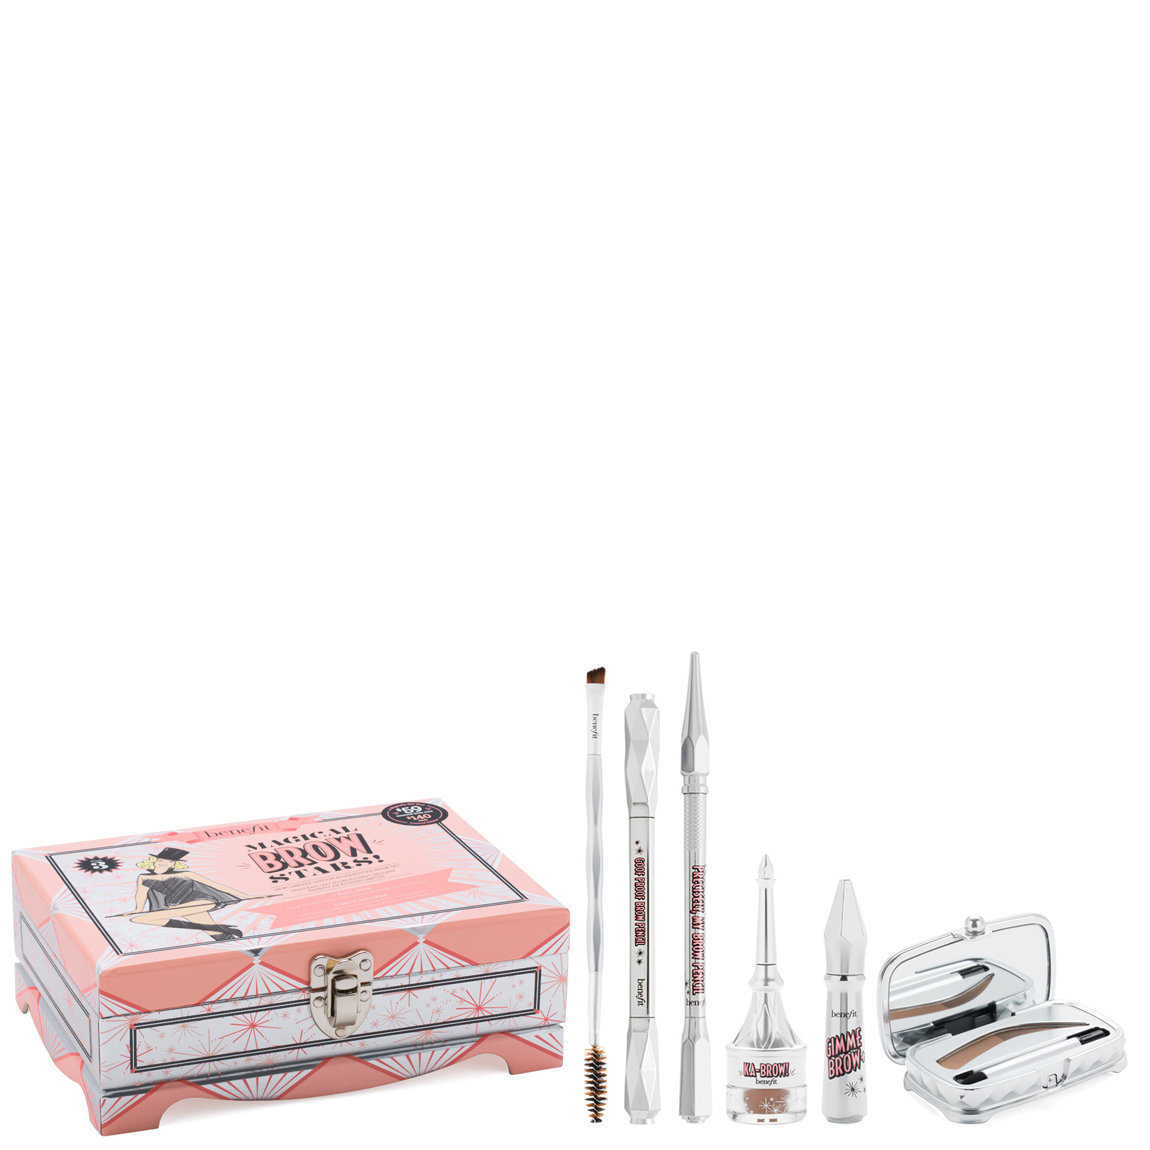 Benefit Cosmetics Magical Brow Stars Set Shade 3 product smear.